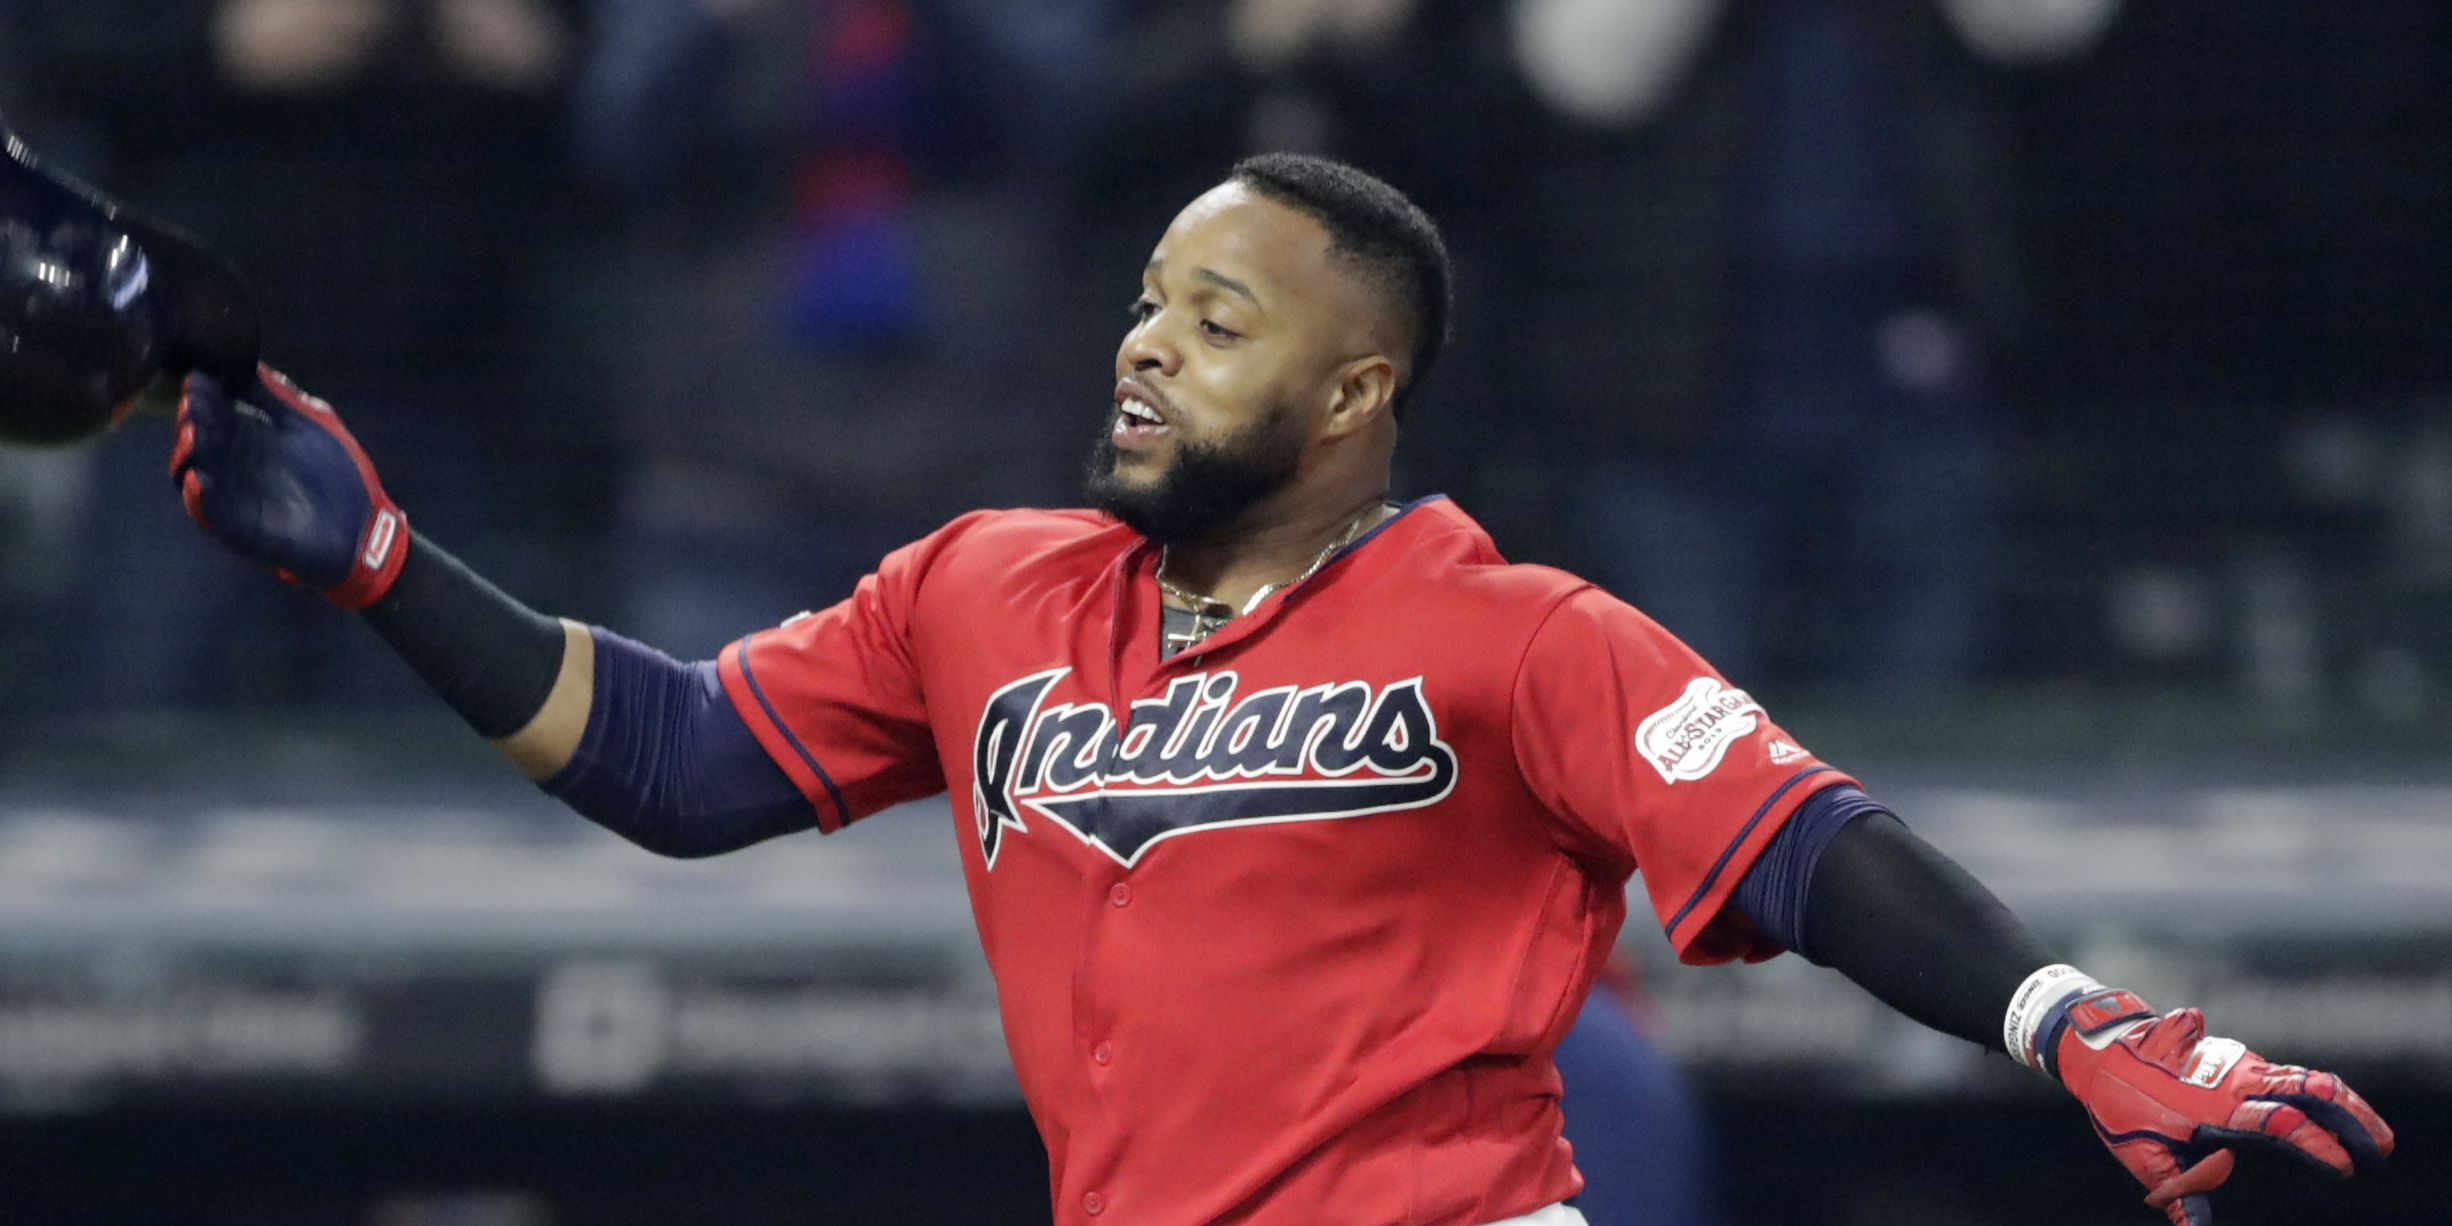 Santana's walk-off homer gives Indians 3-2 win over Jays